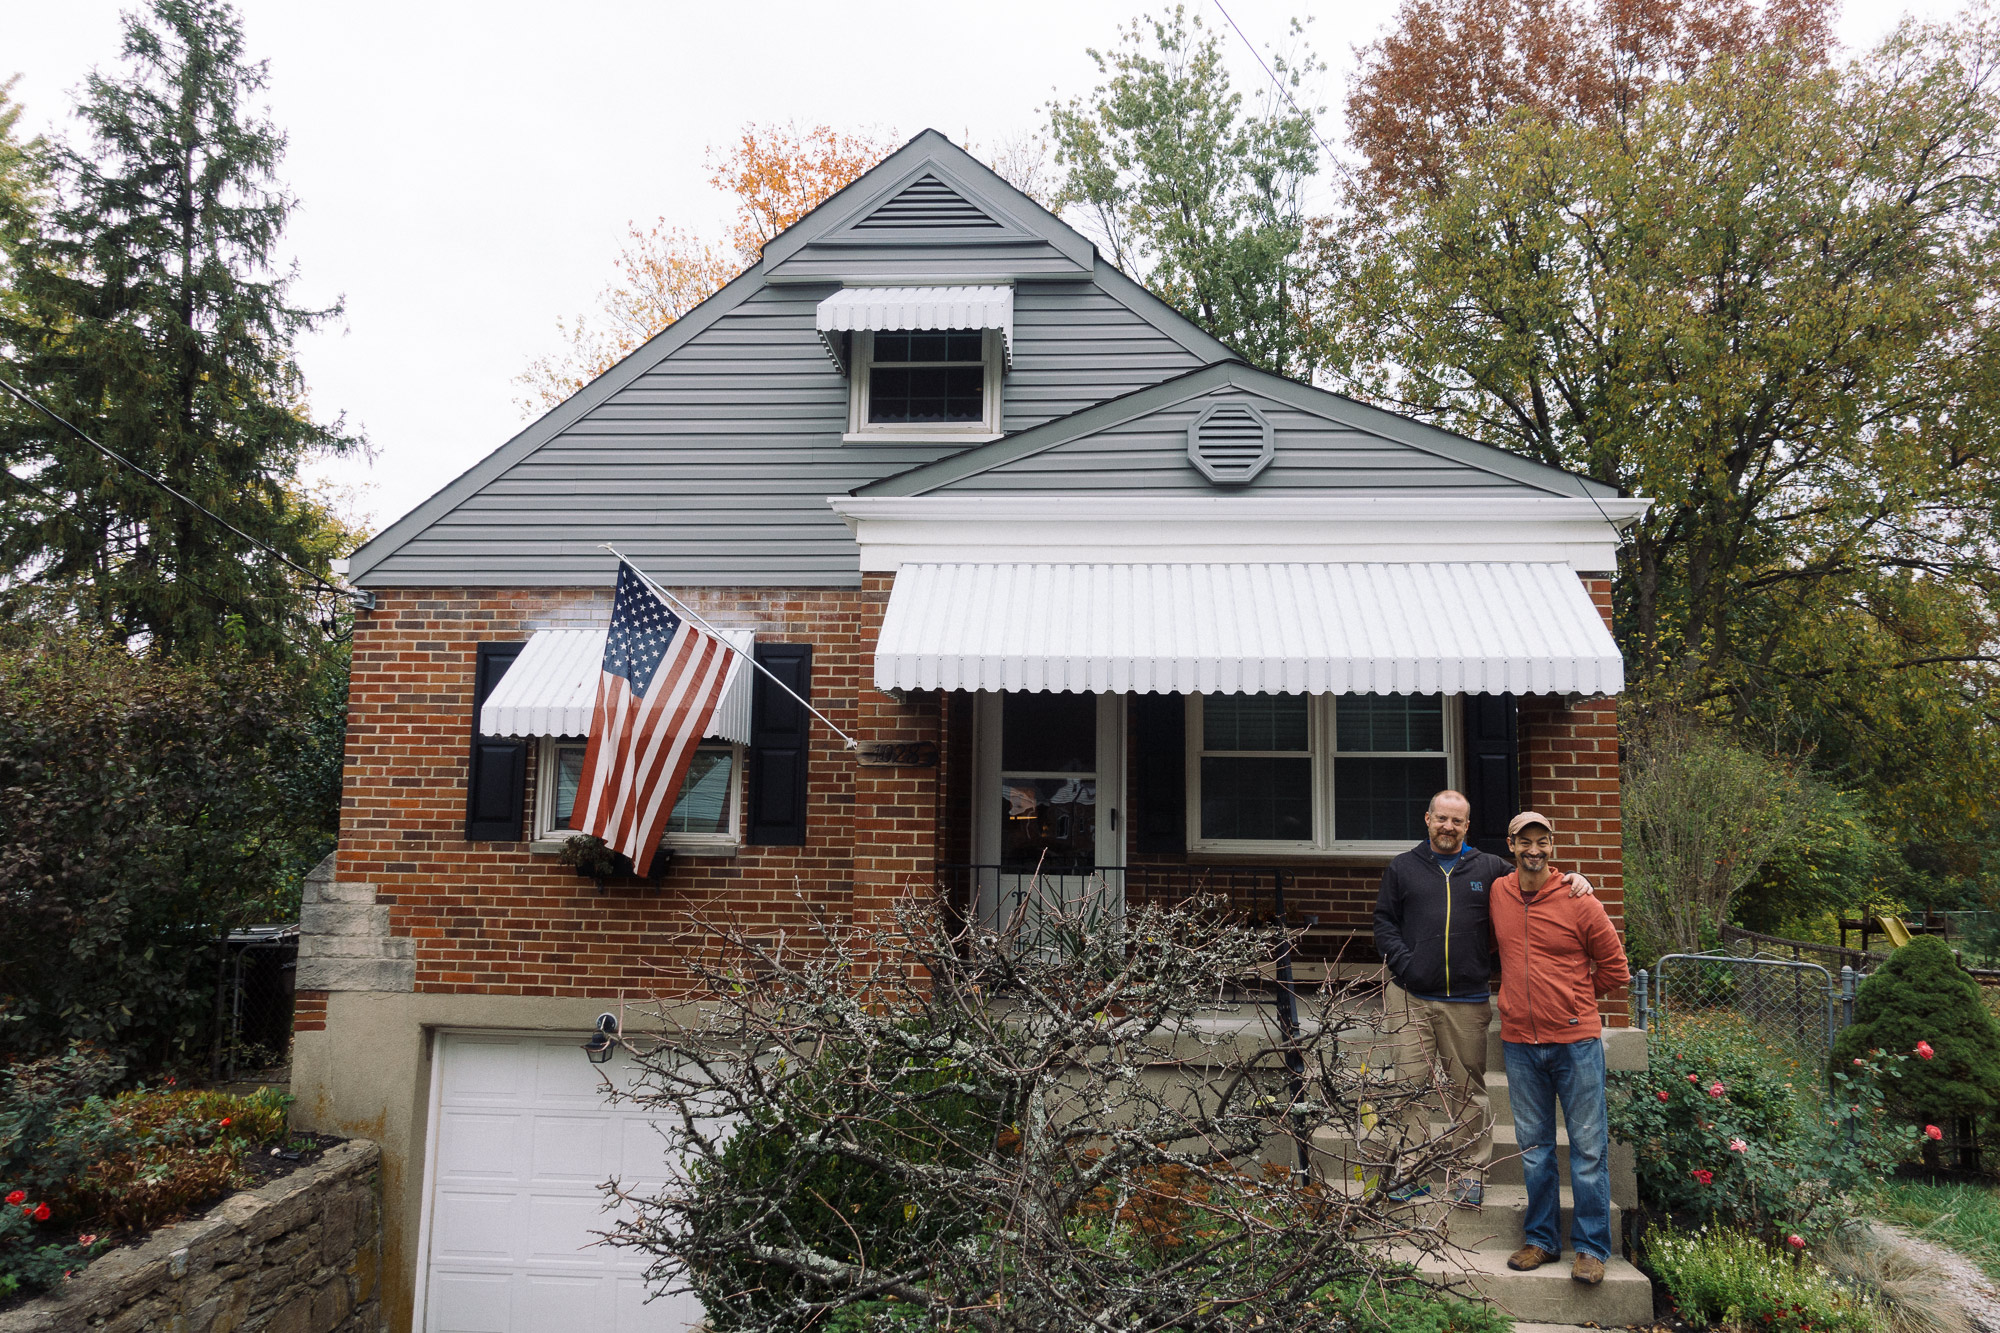 Two men who just bought a house in Ohio